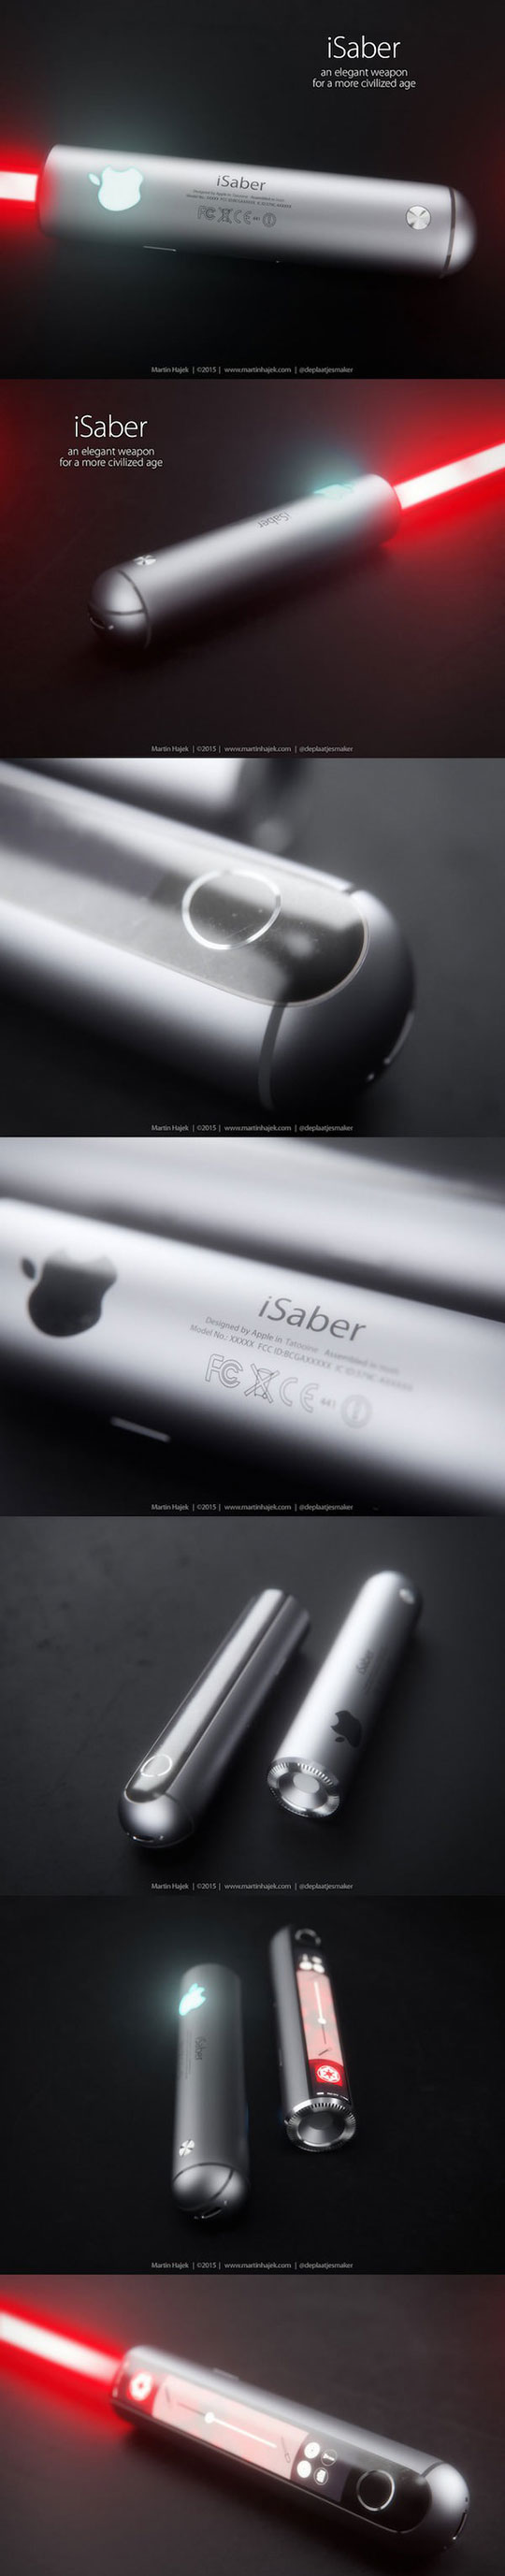 1cool-isaber-design-apple-prototype